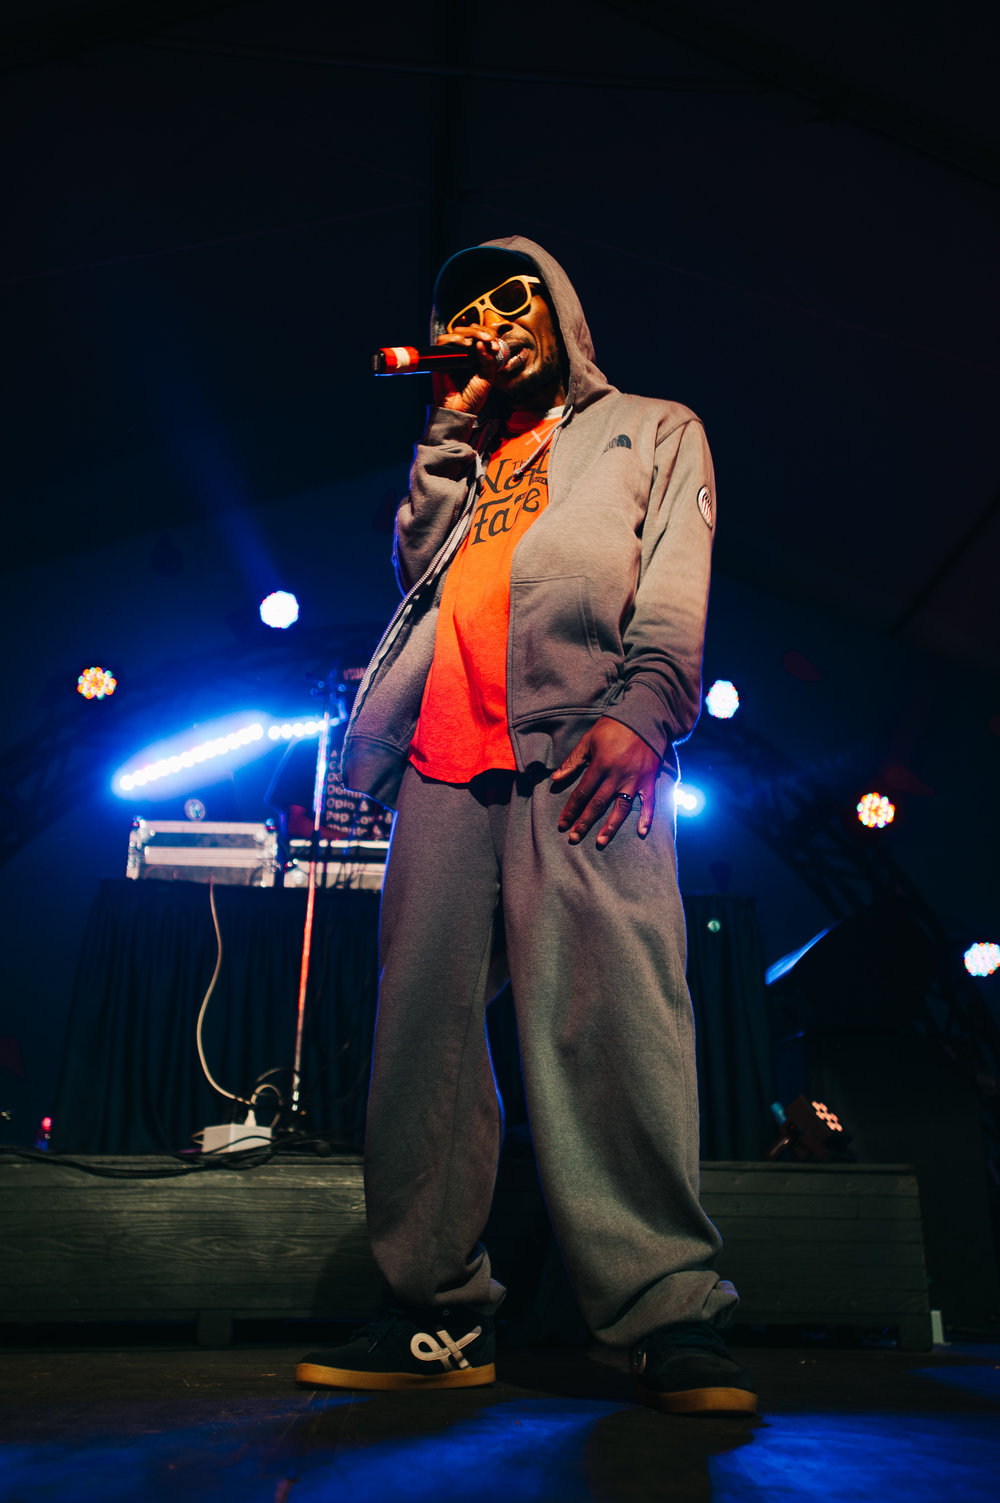 2_Del_the_Funky_Homosapien_Rifflandia-Timothy_Nguyen-20160917 (11 of 16).jpg